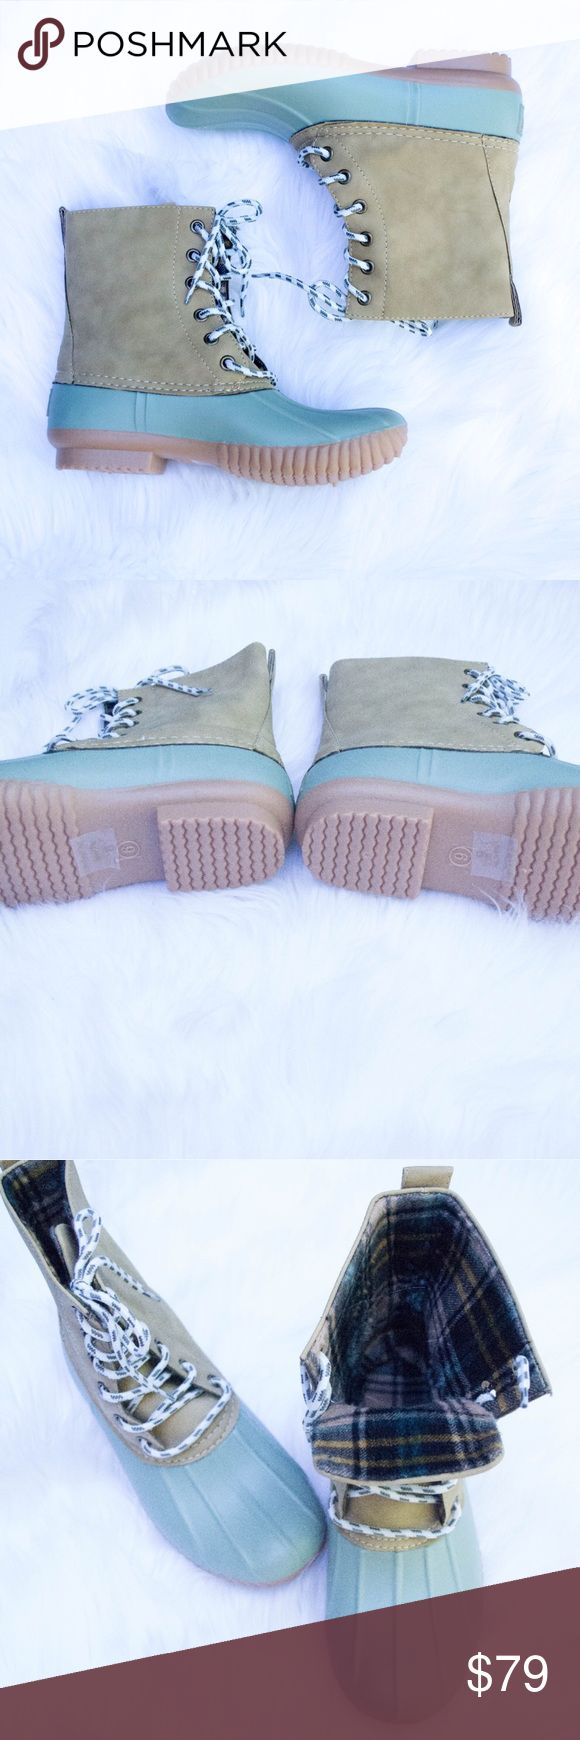 🆕 Sage Duck Boots This listing is for sage. These are selling like crazy for fall 🍁🍁🍁 $79 each or $130 for 2 pairs. Other colors available 😍 Select lining in each boot to keep you comfy. Stitched synthetic rubber sole for durability and grip 😊 Price FIRM unless bundled. Kyoot Klothing Shoes Winter & Rain Boots